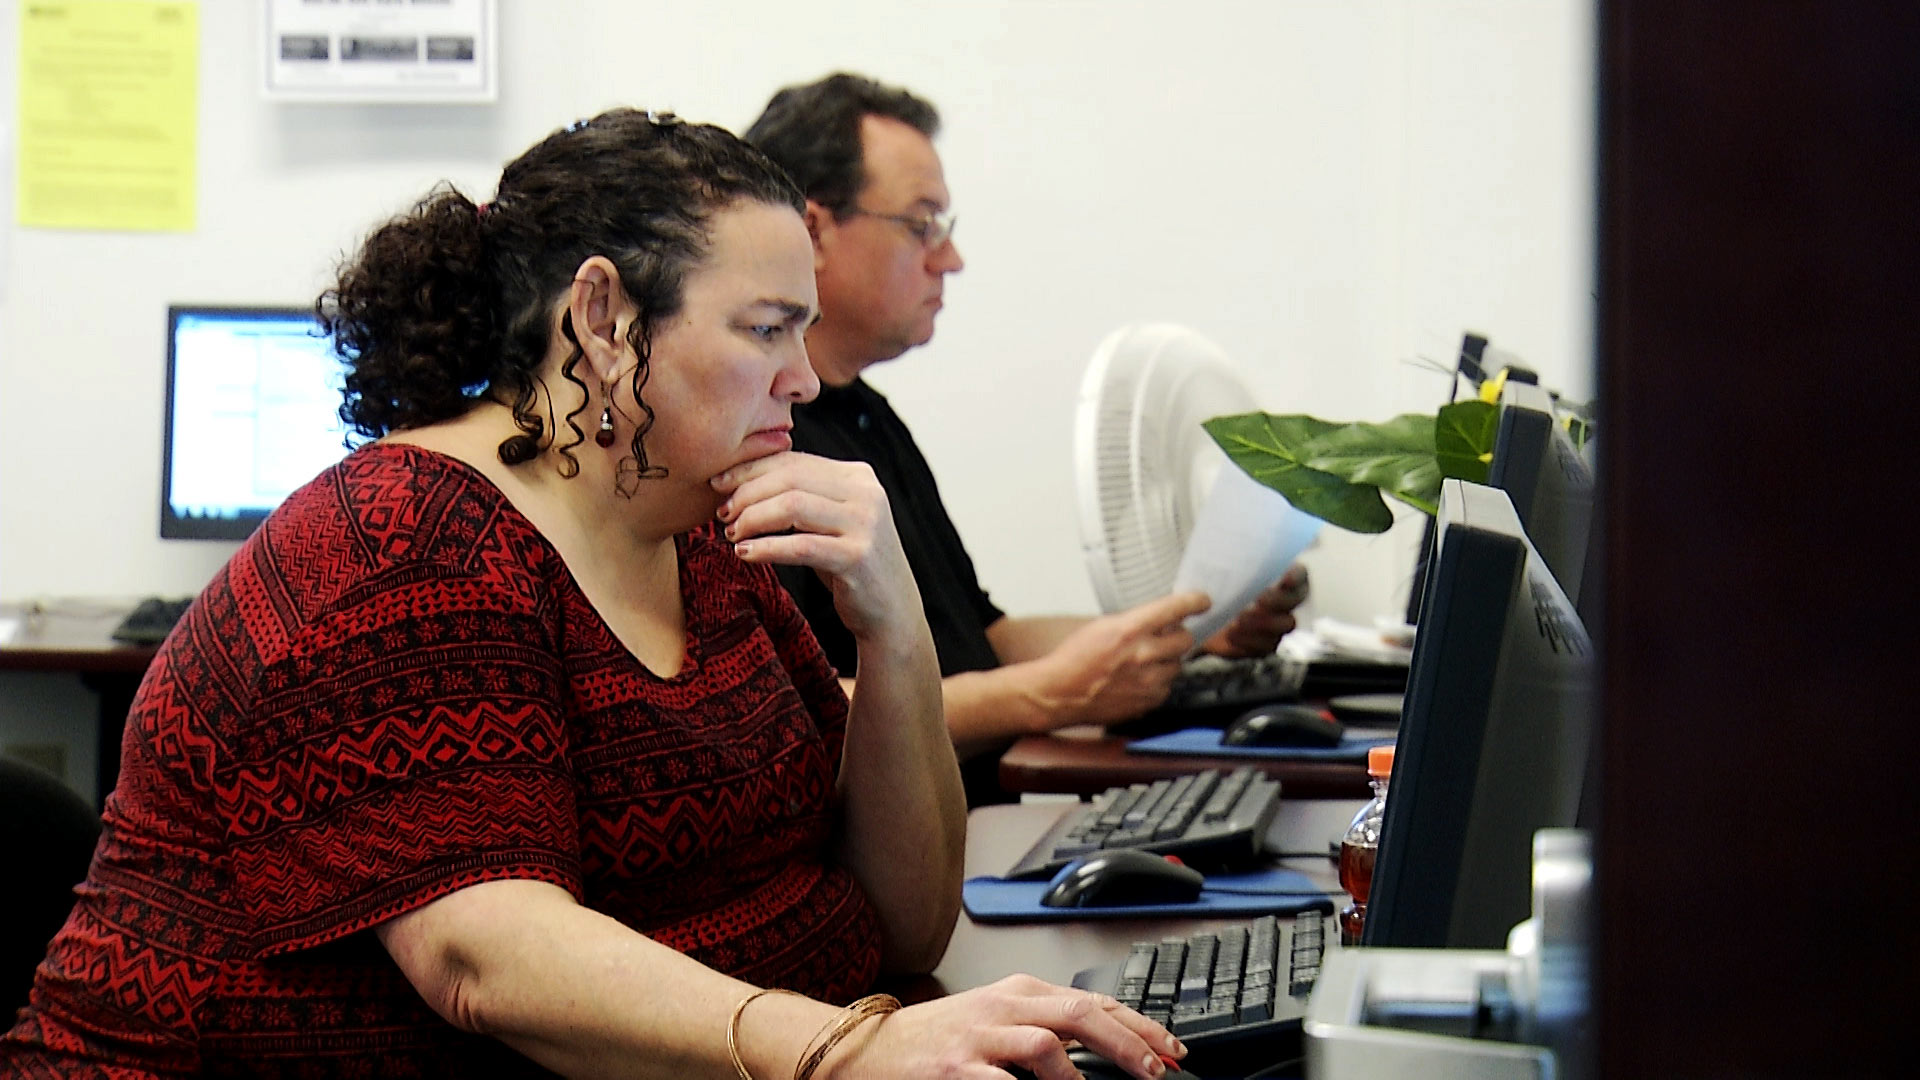 Undated image of a woman using a computer at a job connection center in Pima County.